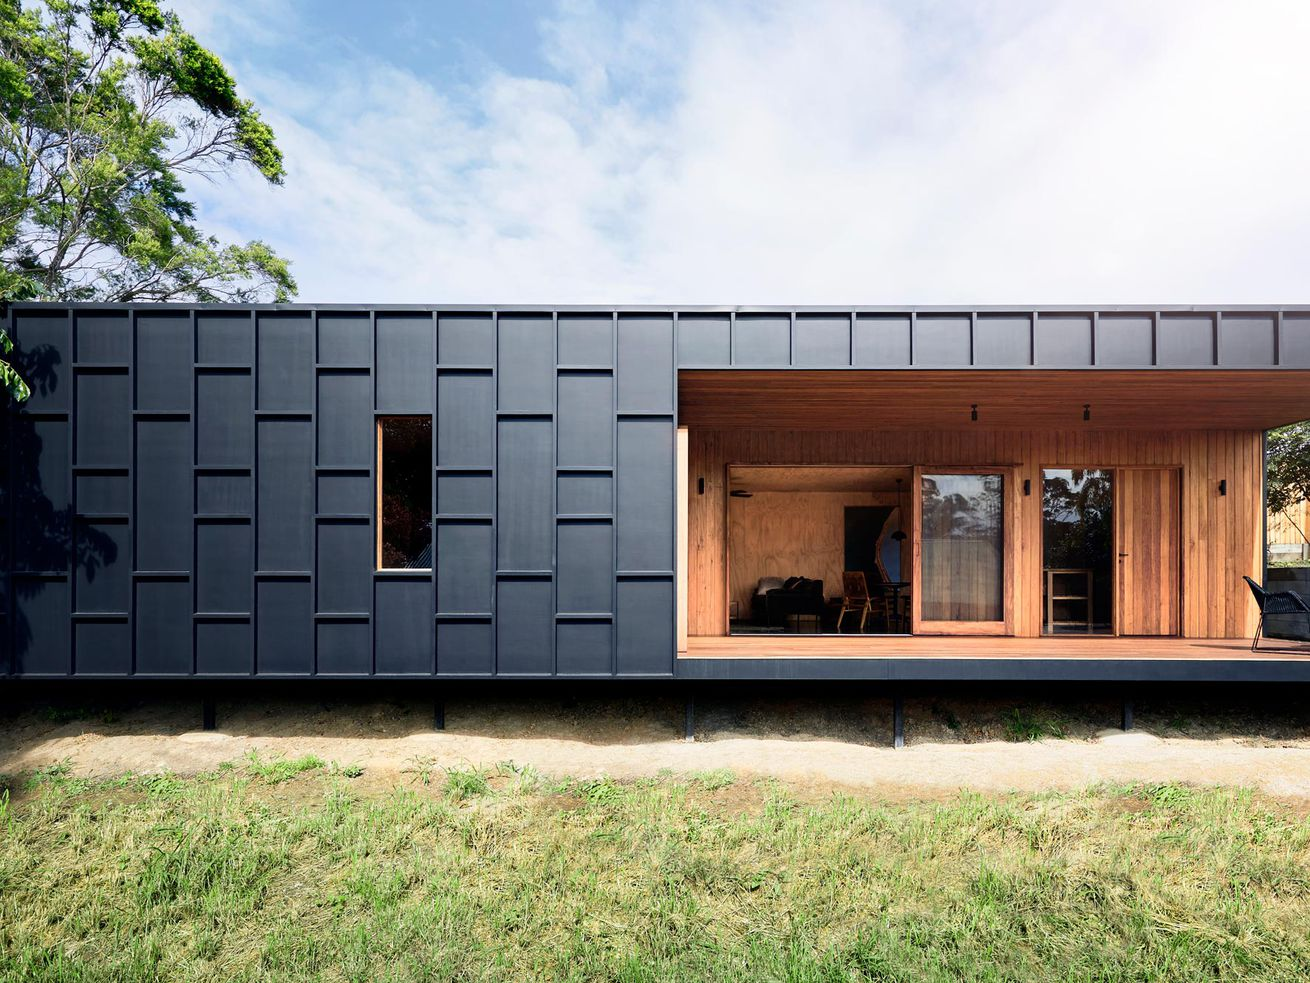 A single-story house featuring dark panel cladding and a cut-out opening to the interior, which is lined in plywood.